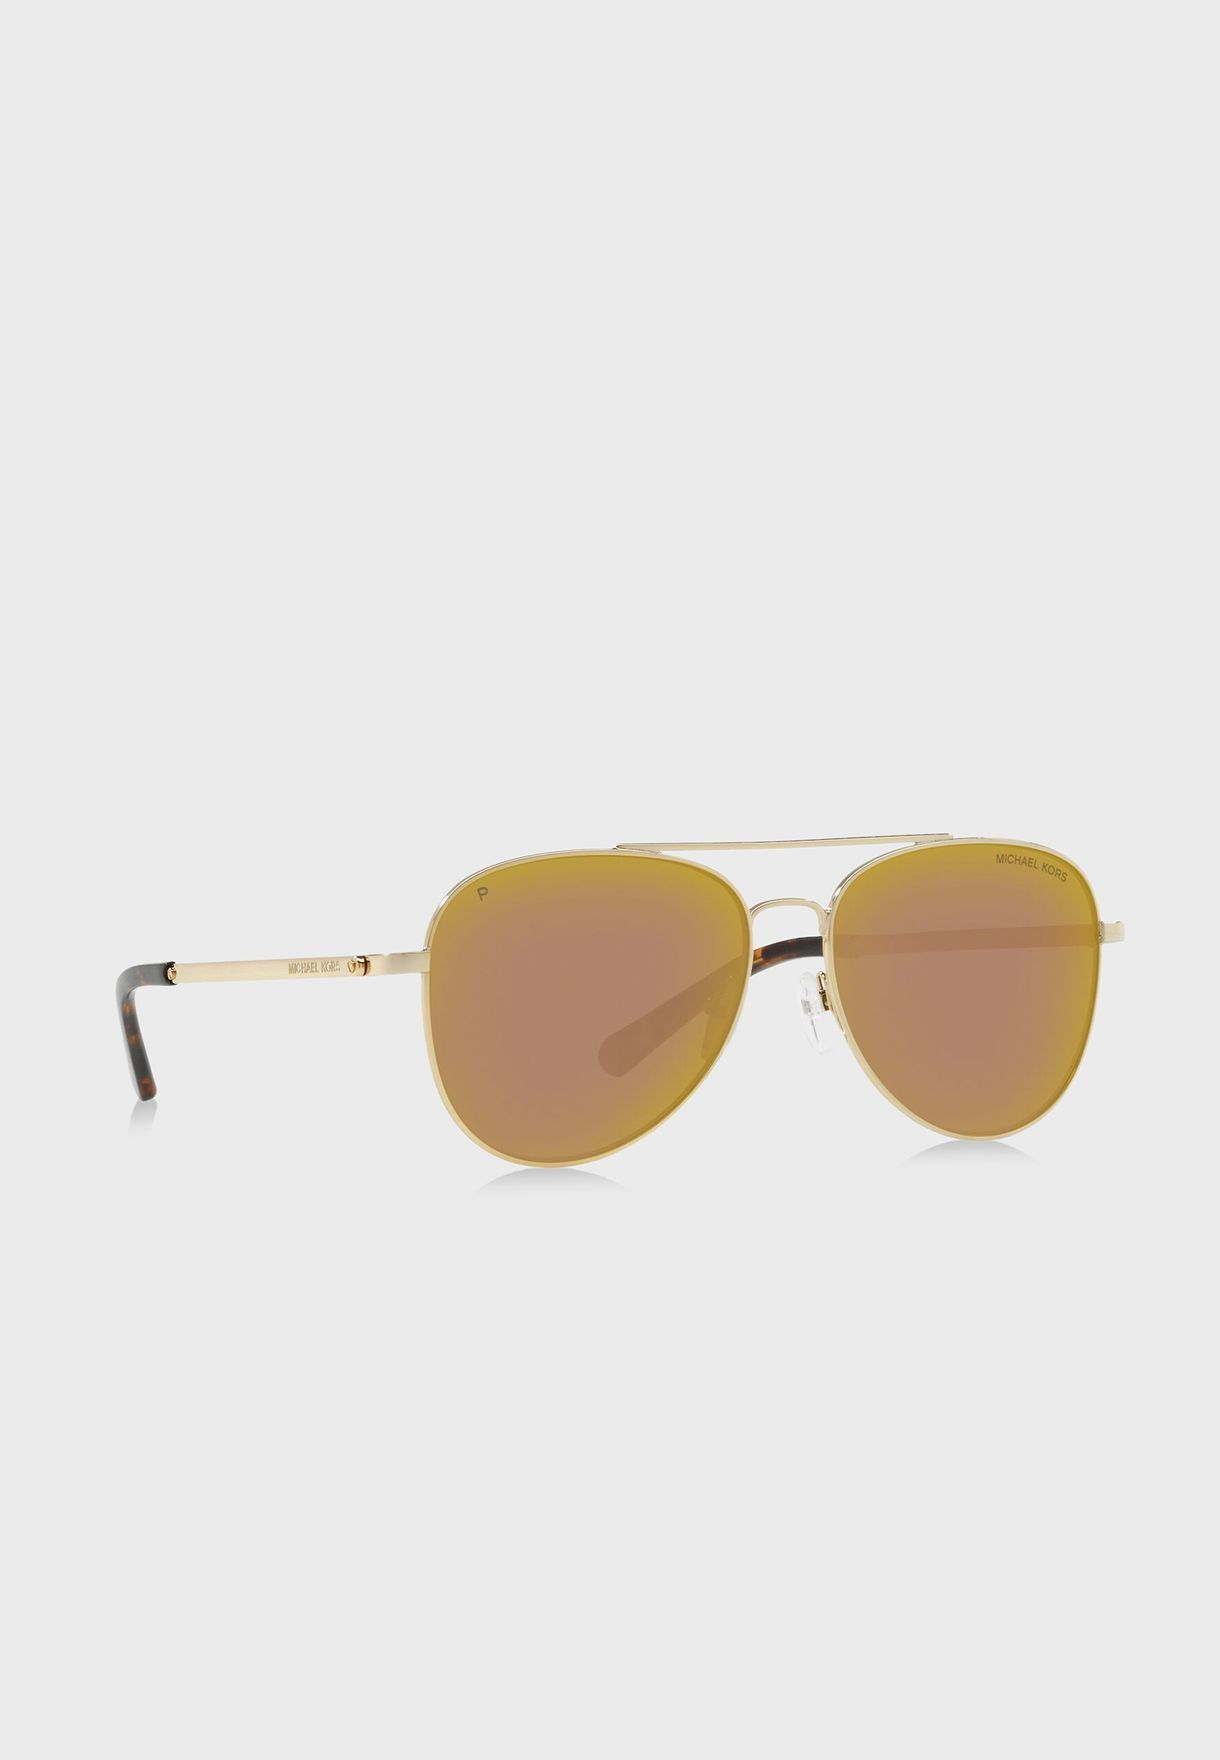 10142O Aviator Sunglasses